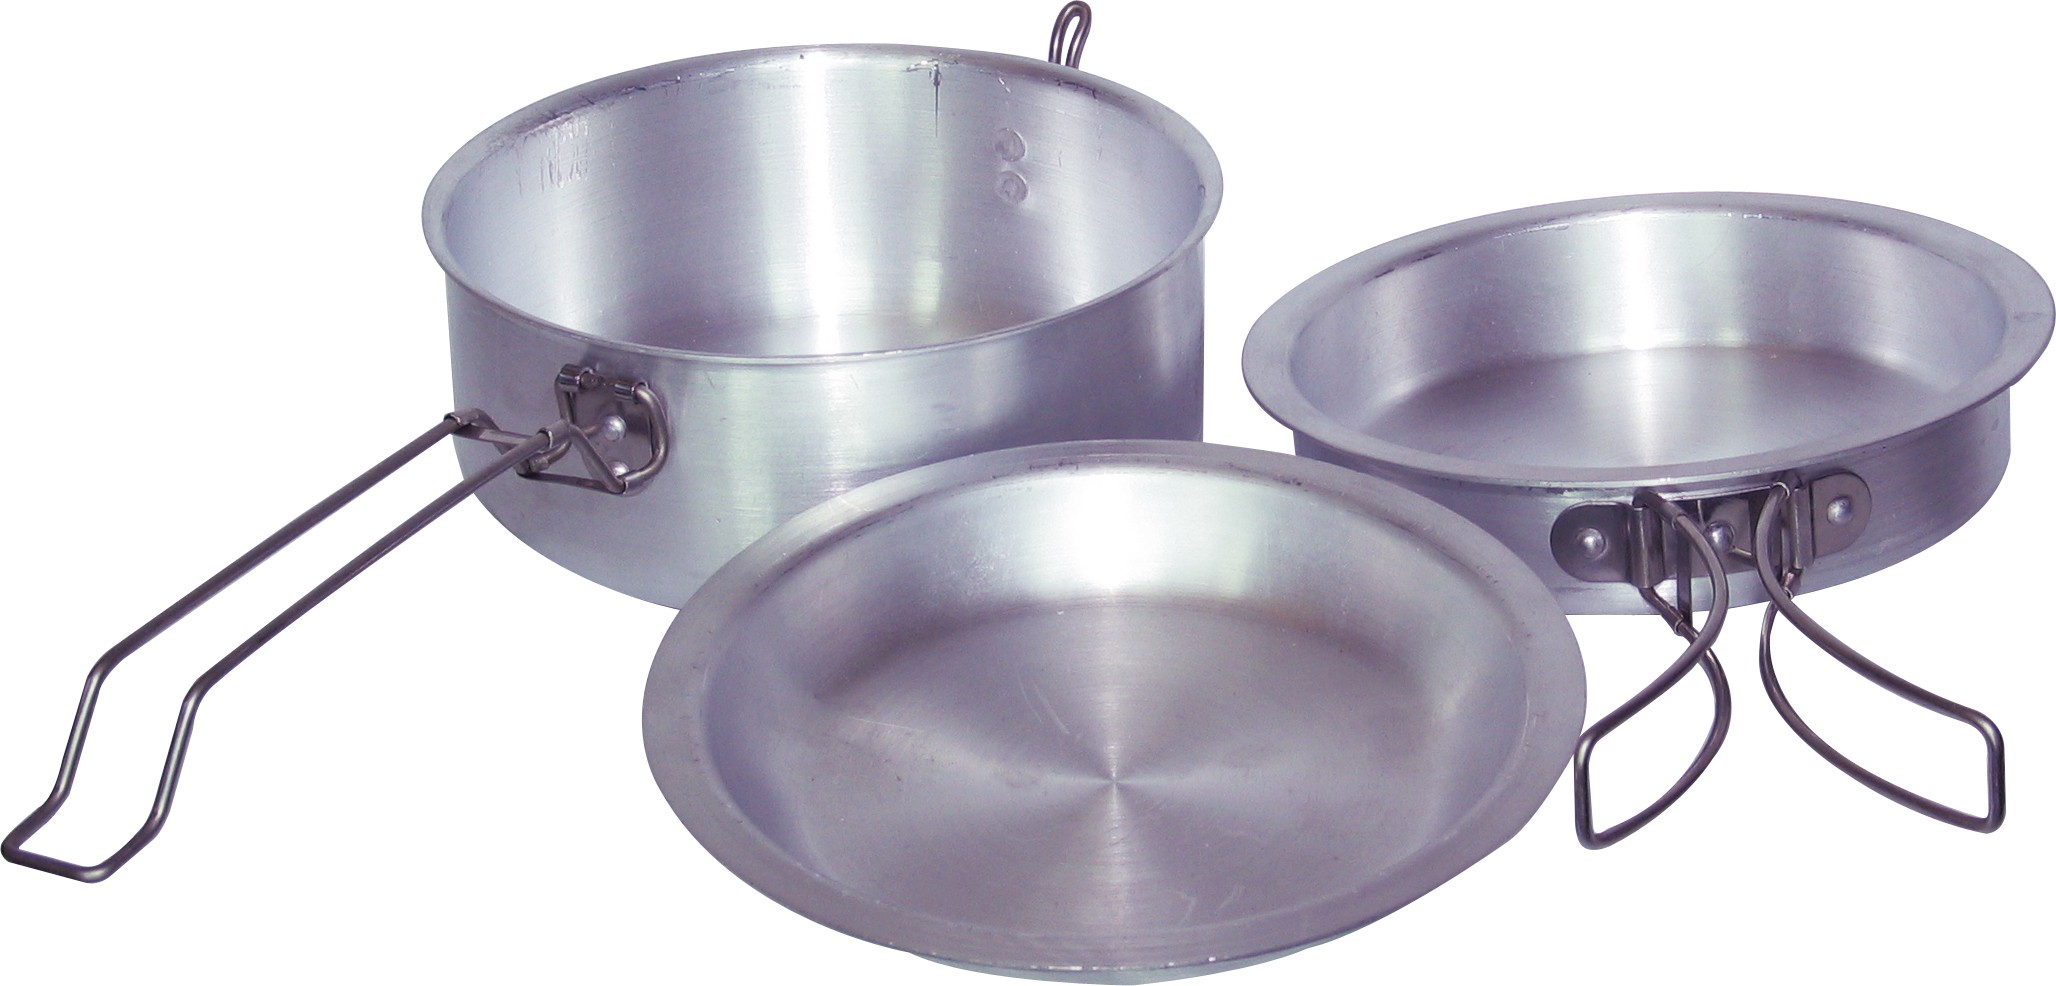 CAMP 'N' COOK SCOUT SET Kettle set - Retki Finland